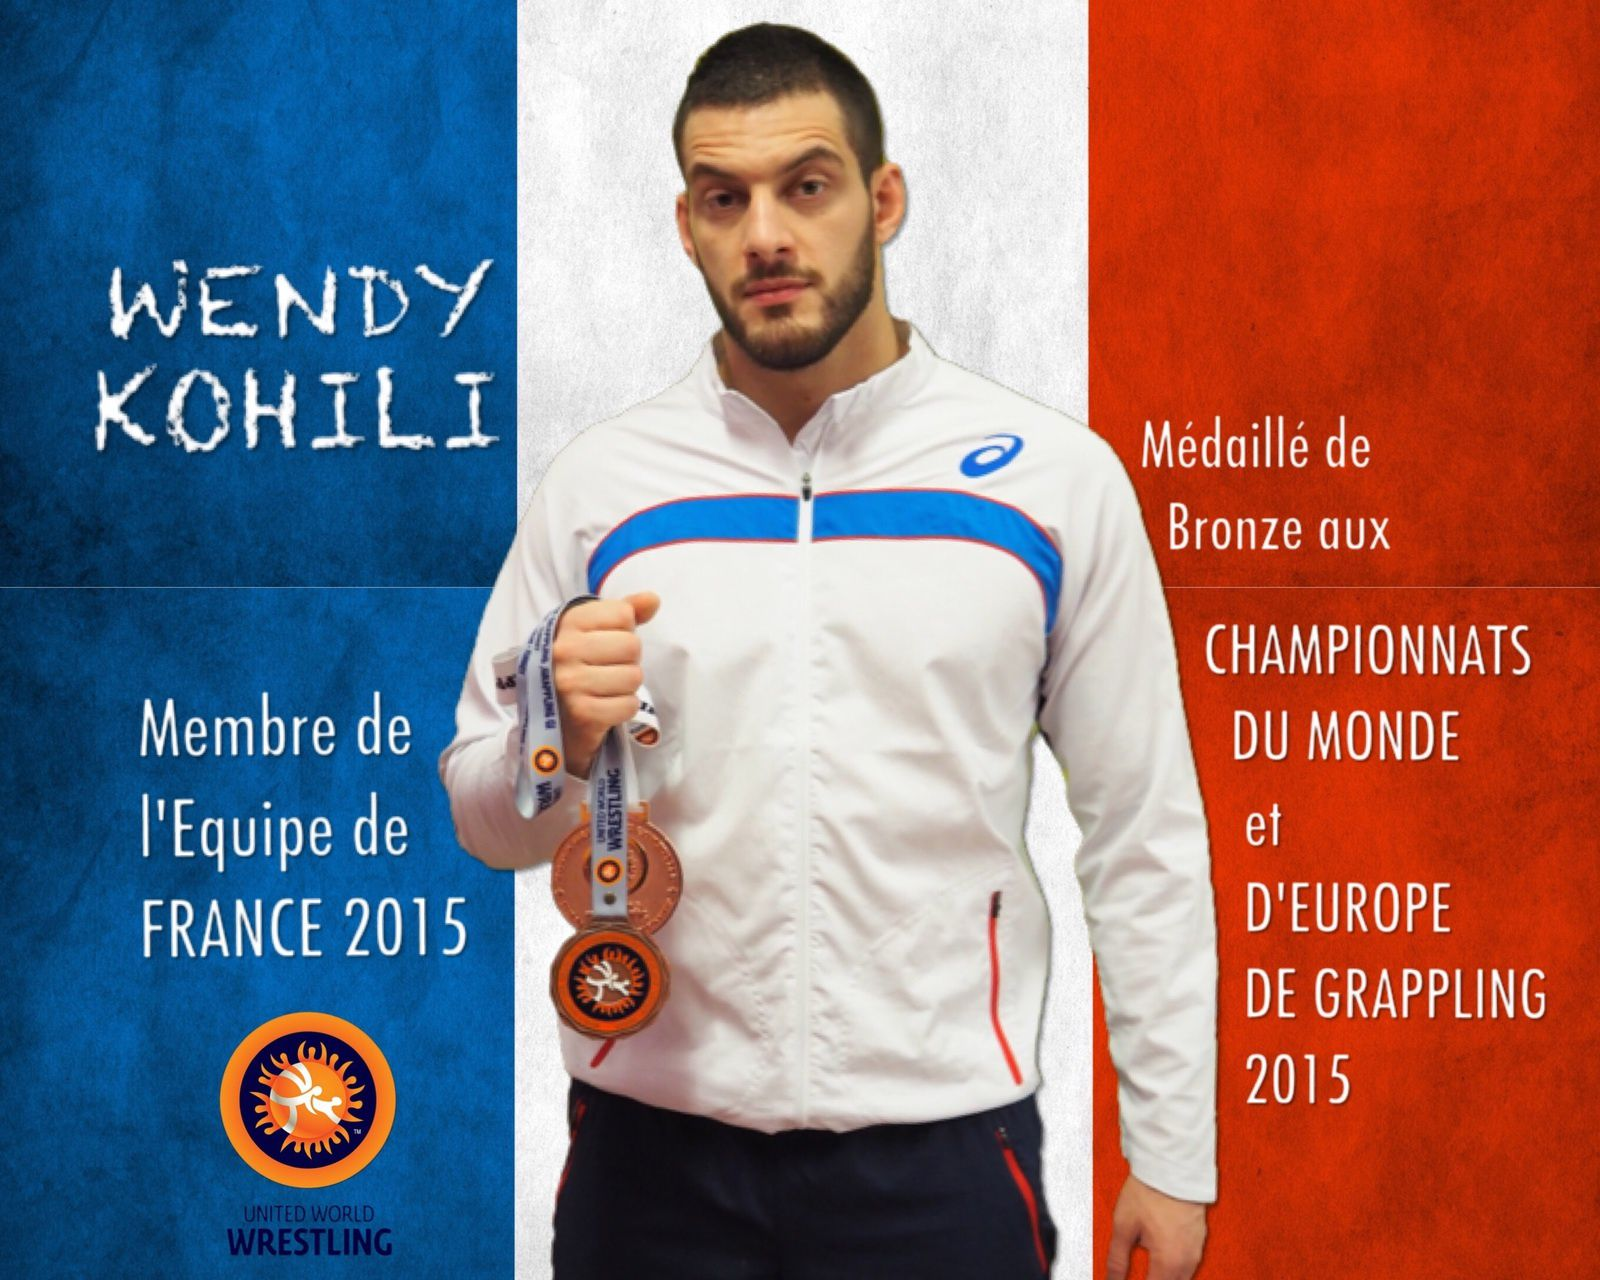 Wendy Kohili      Equipe de France de Grappling 2015